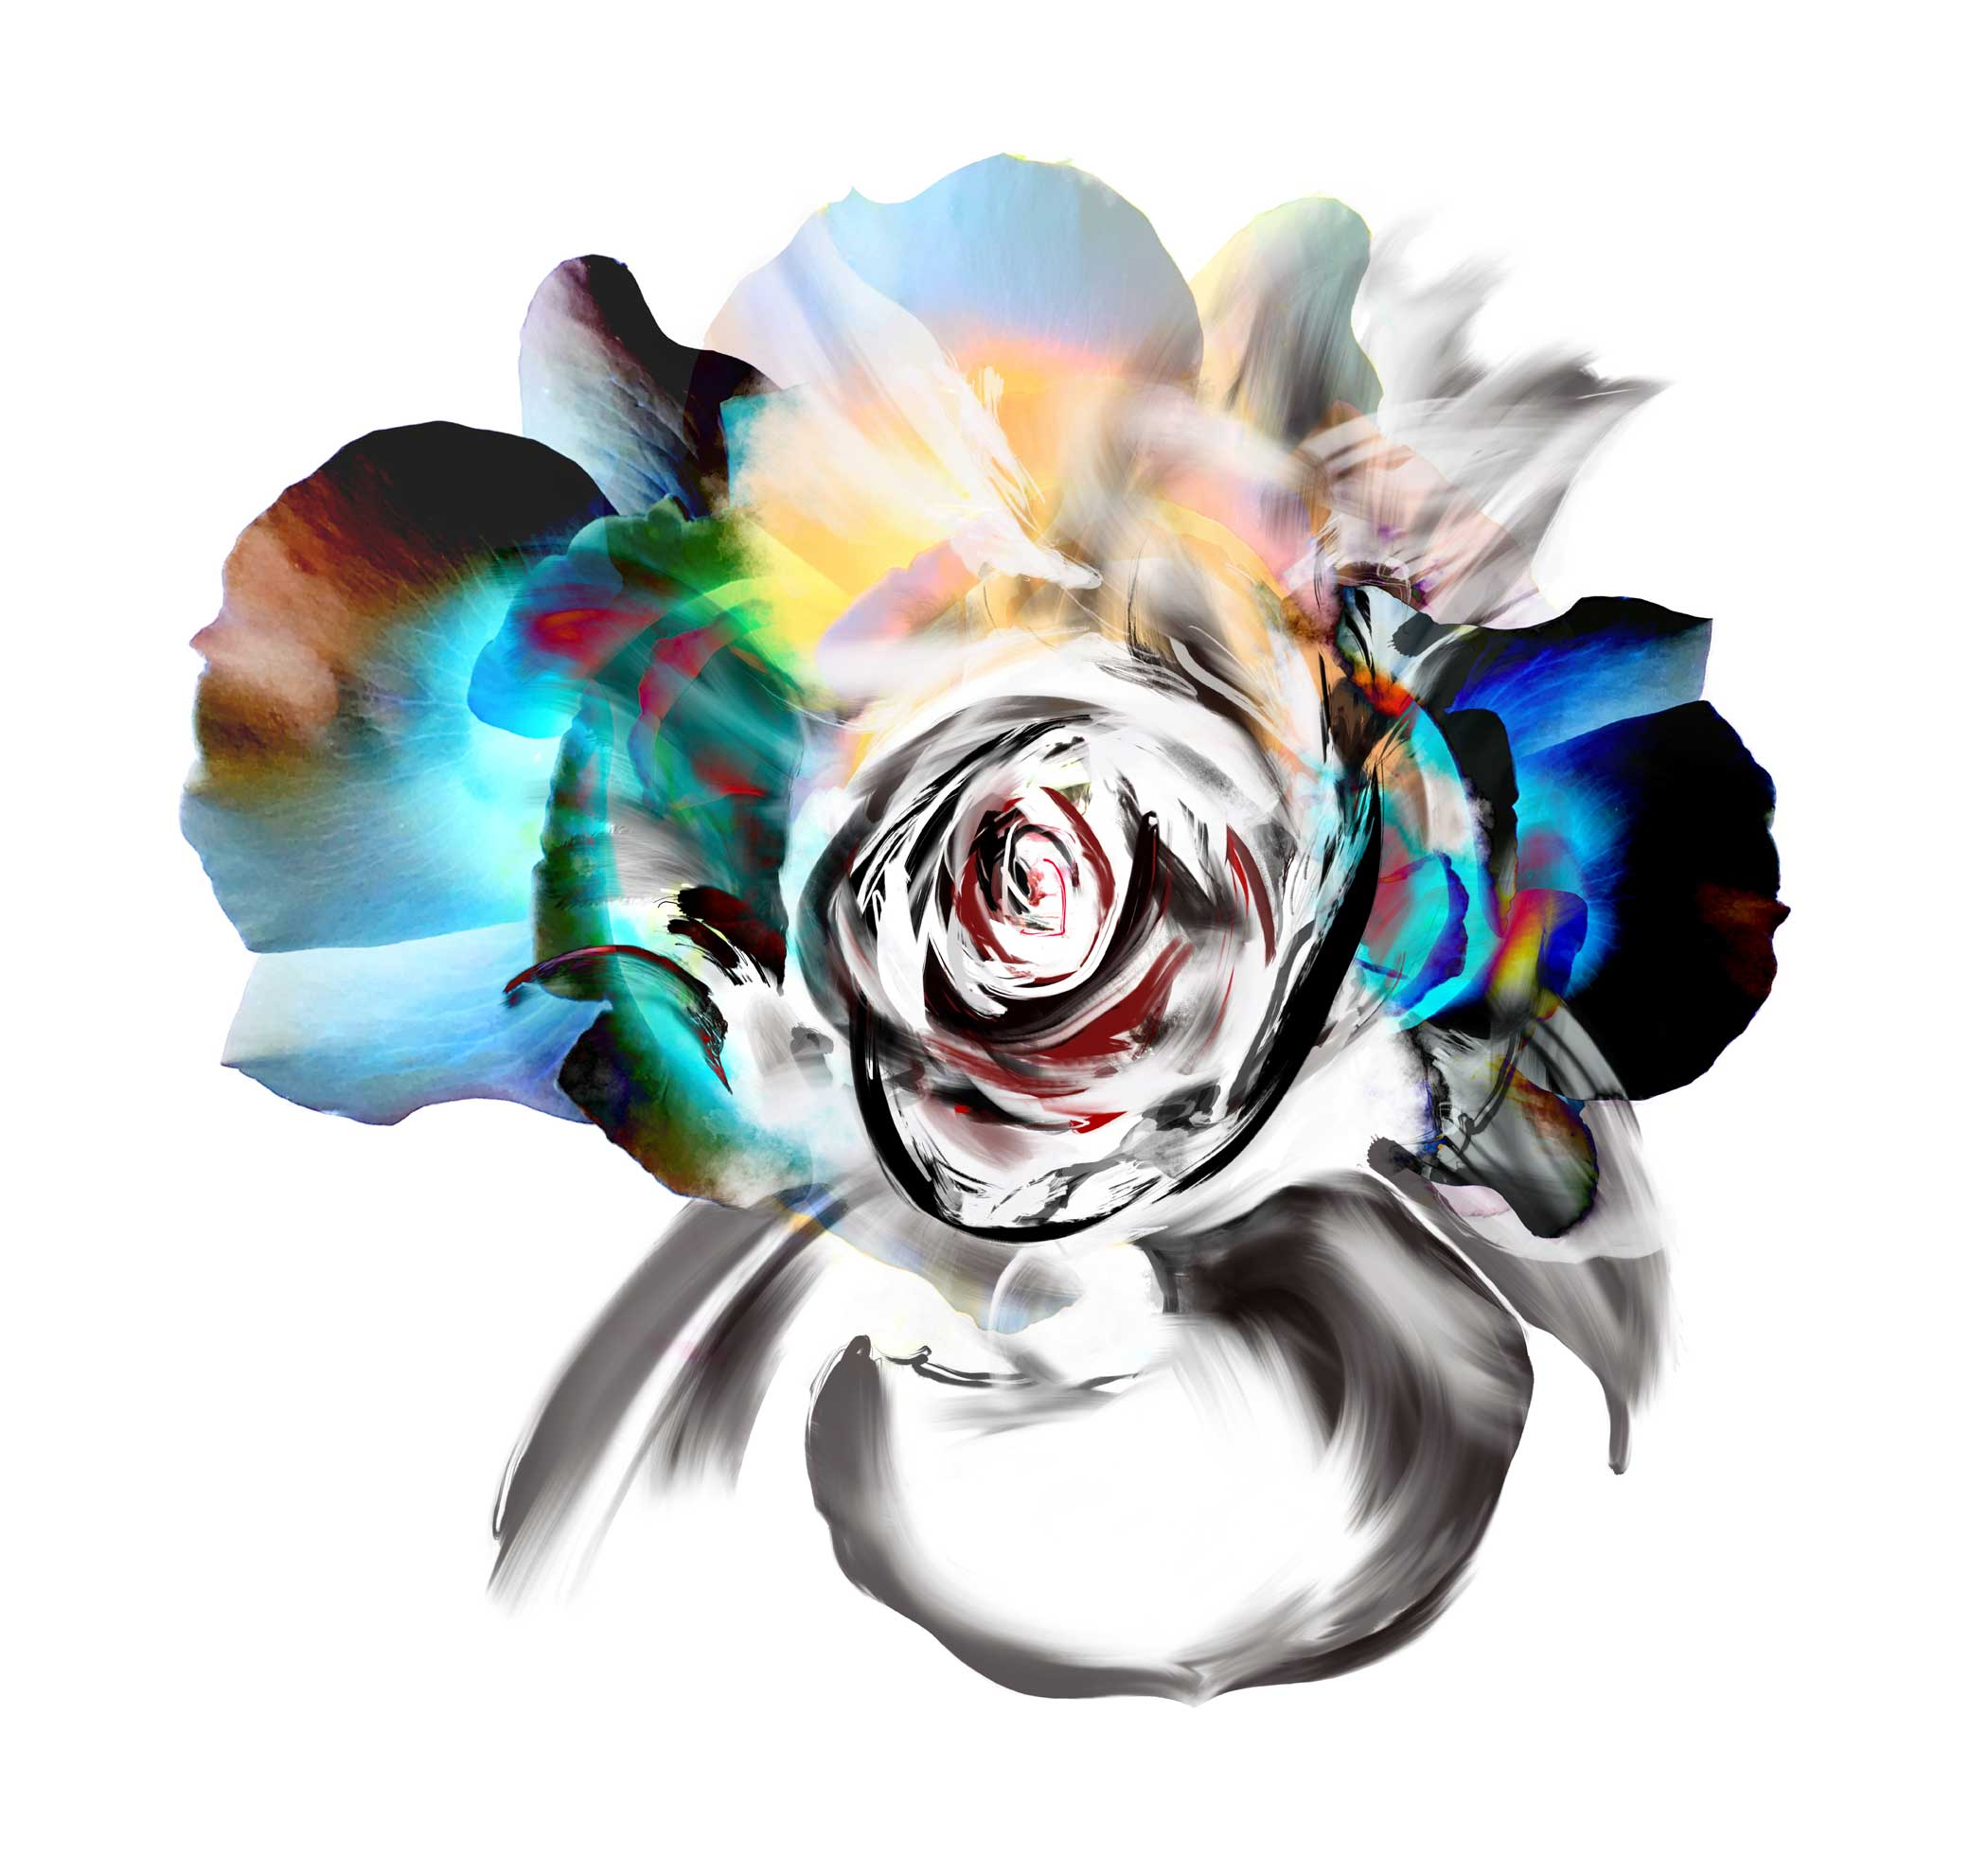 Kahori Maki sees energy in nature. To translate that concept into VISIONEO16, she starts by taking a photo of a rose with an iPhone 6s. Then she imports the image into the Procreate app on iPad Pro, where she gives the flower new life by adding vivid colors and dynamic, free-flowing brushstrokes with the Apple Pencil.